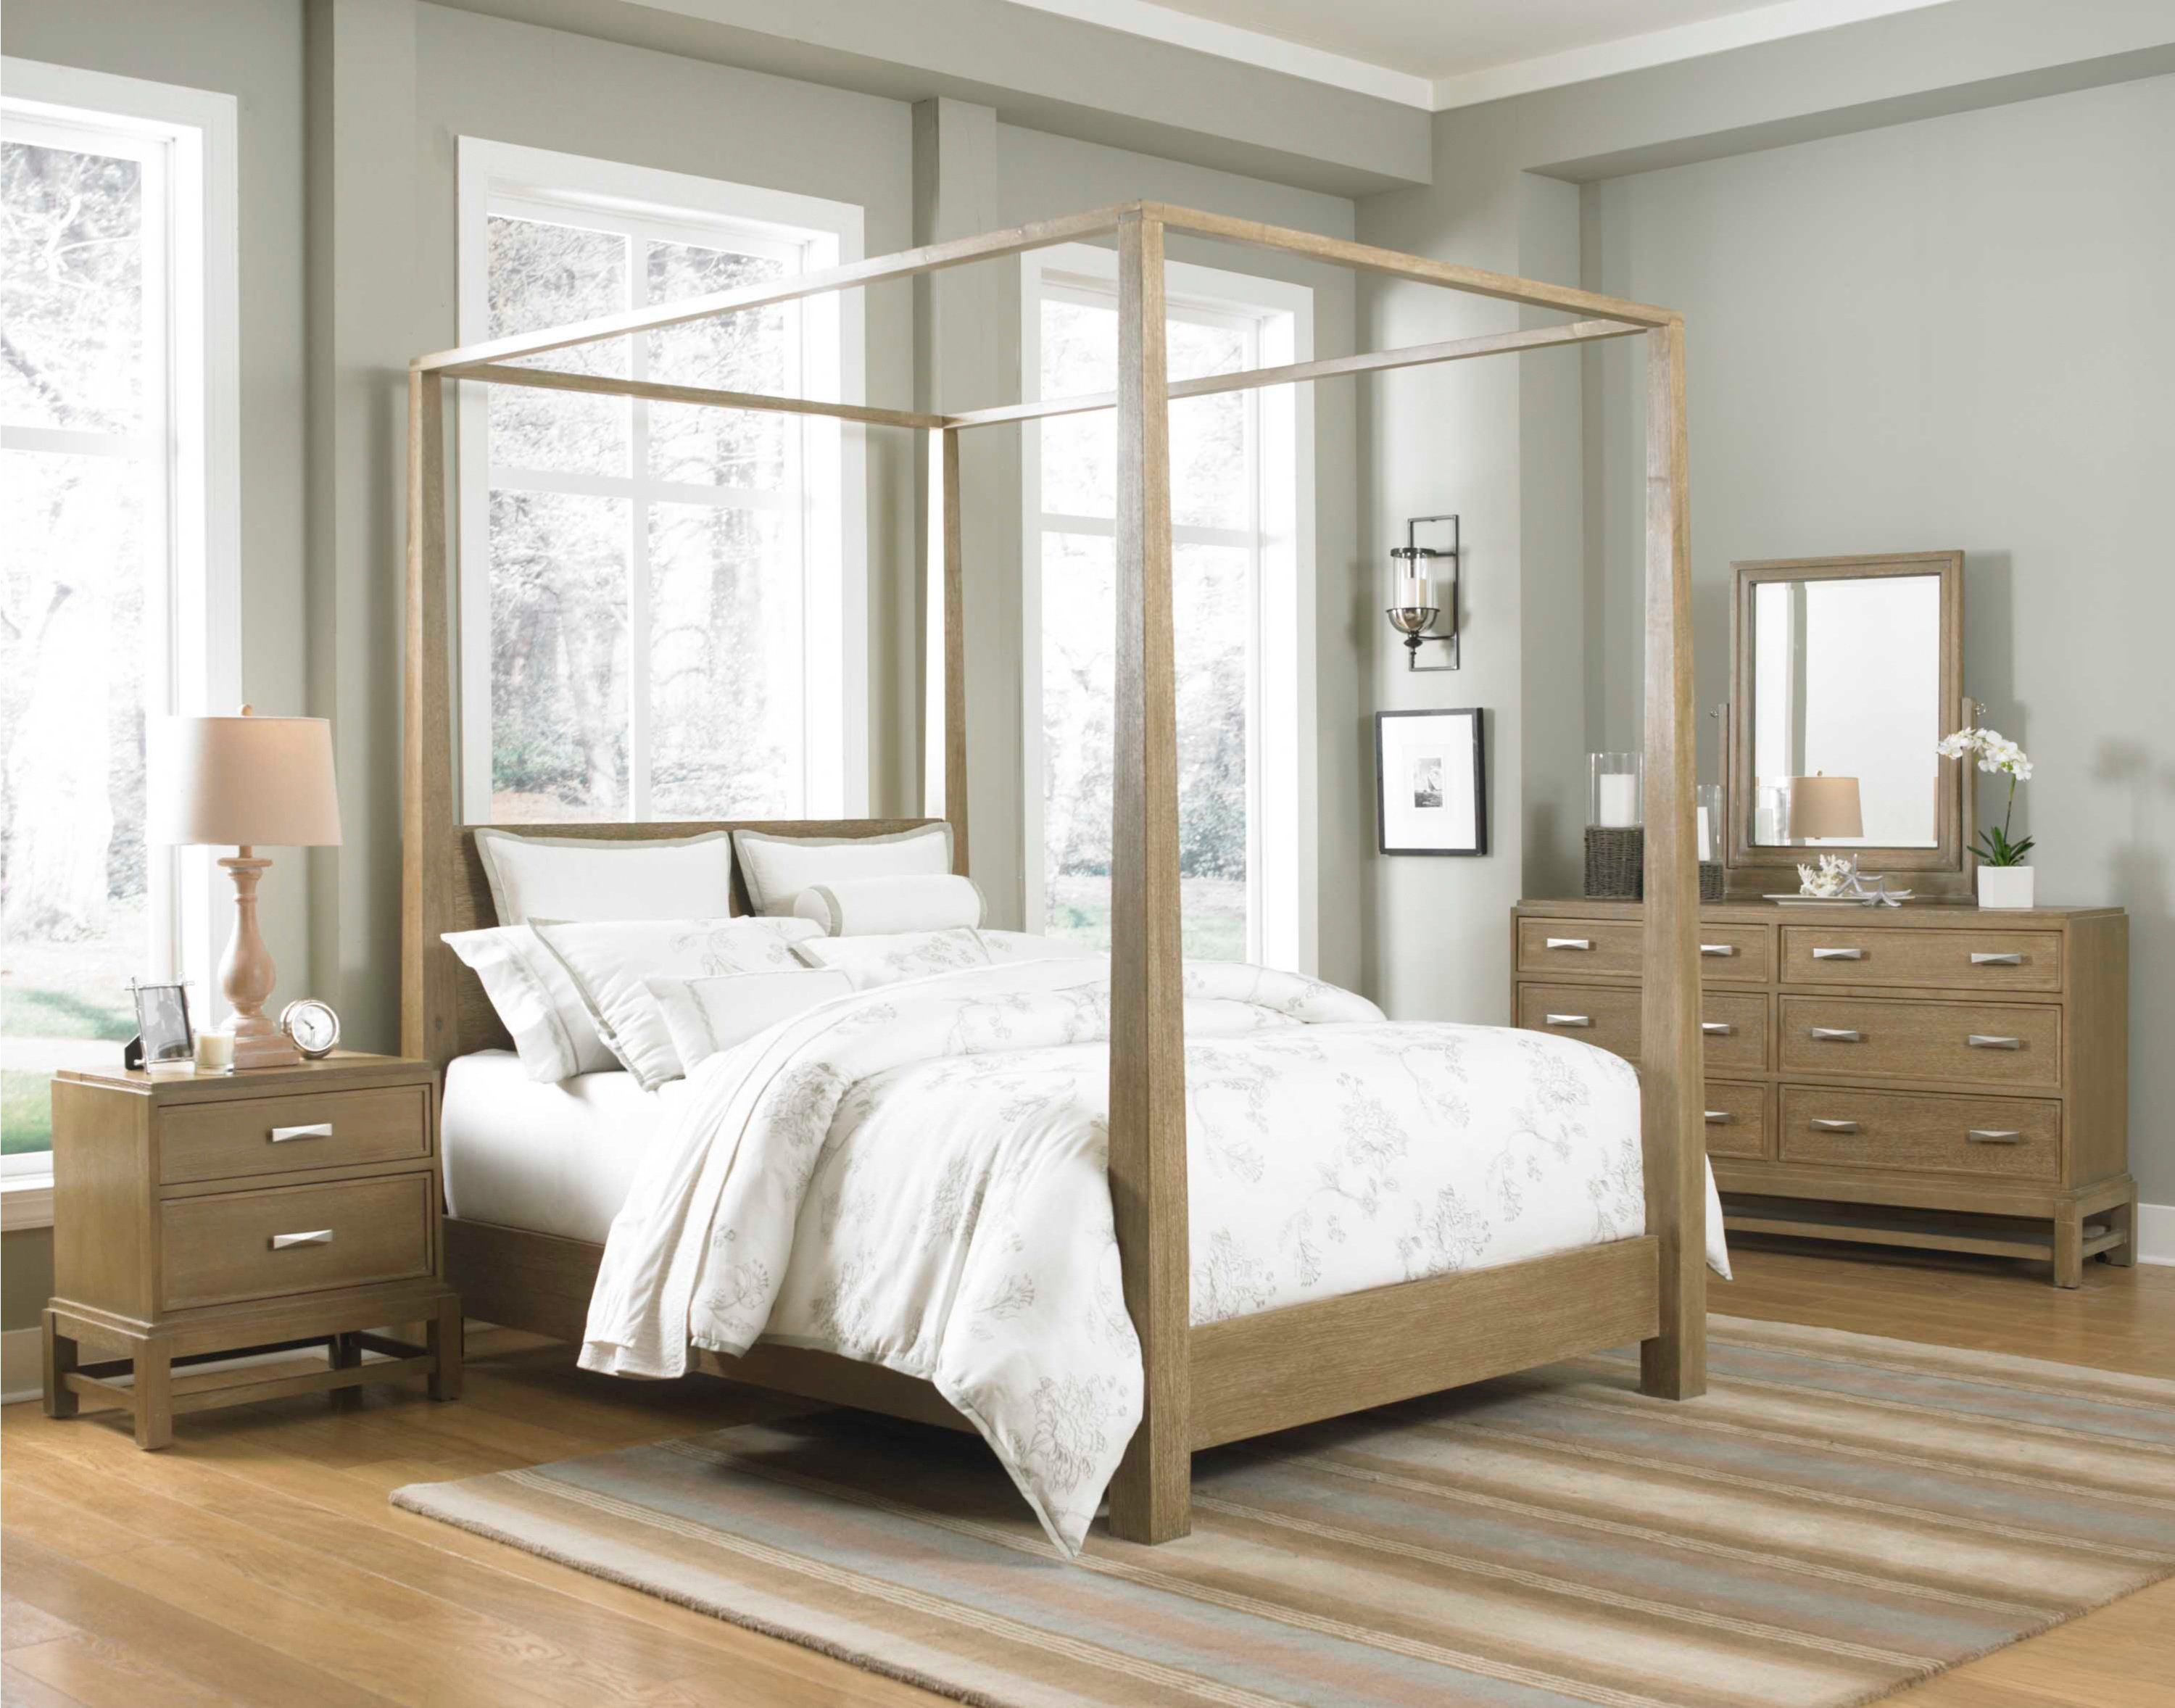 Use Canopy Bedroom Sets and White Bedding to Complete Cozy Bedroom with Oak Dressers on Wooden Flooring